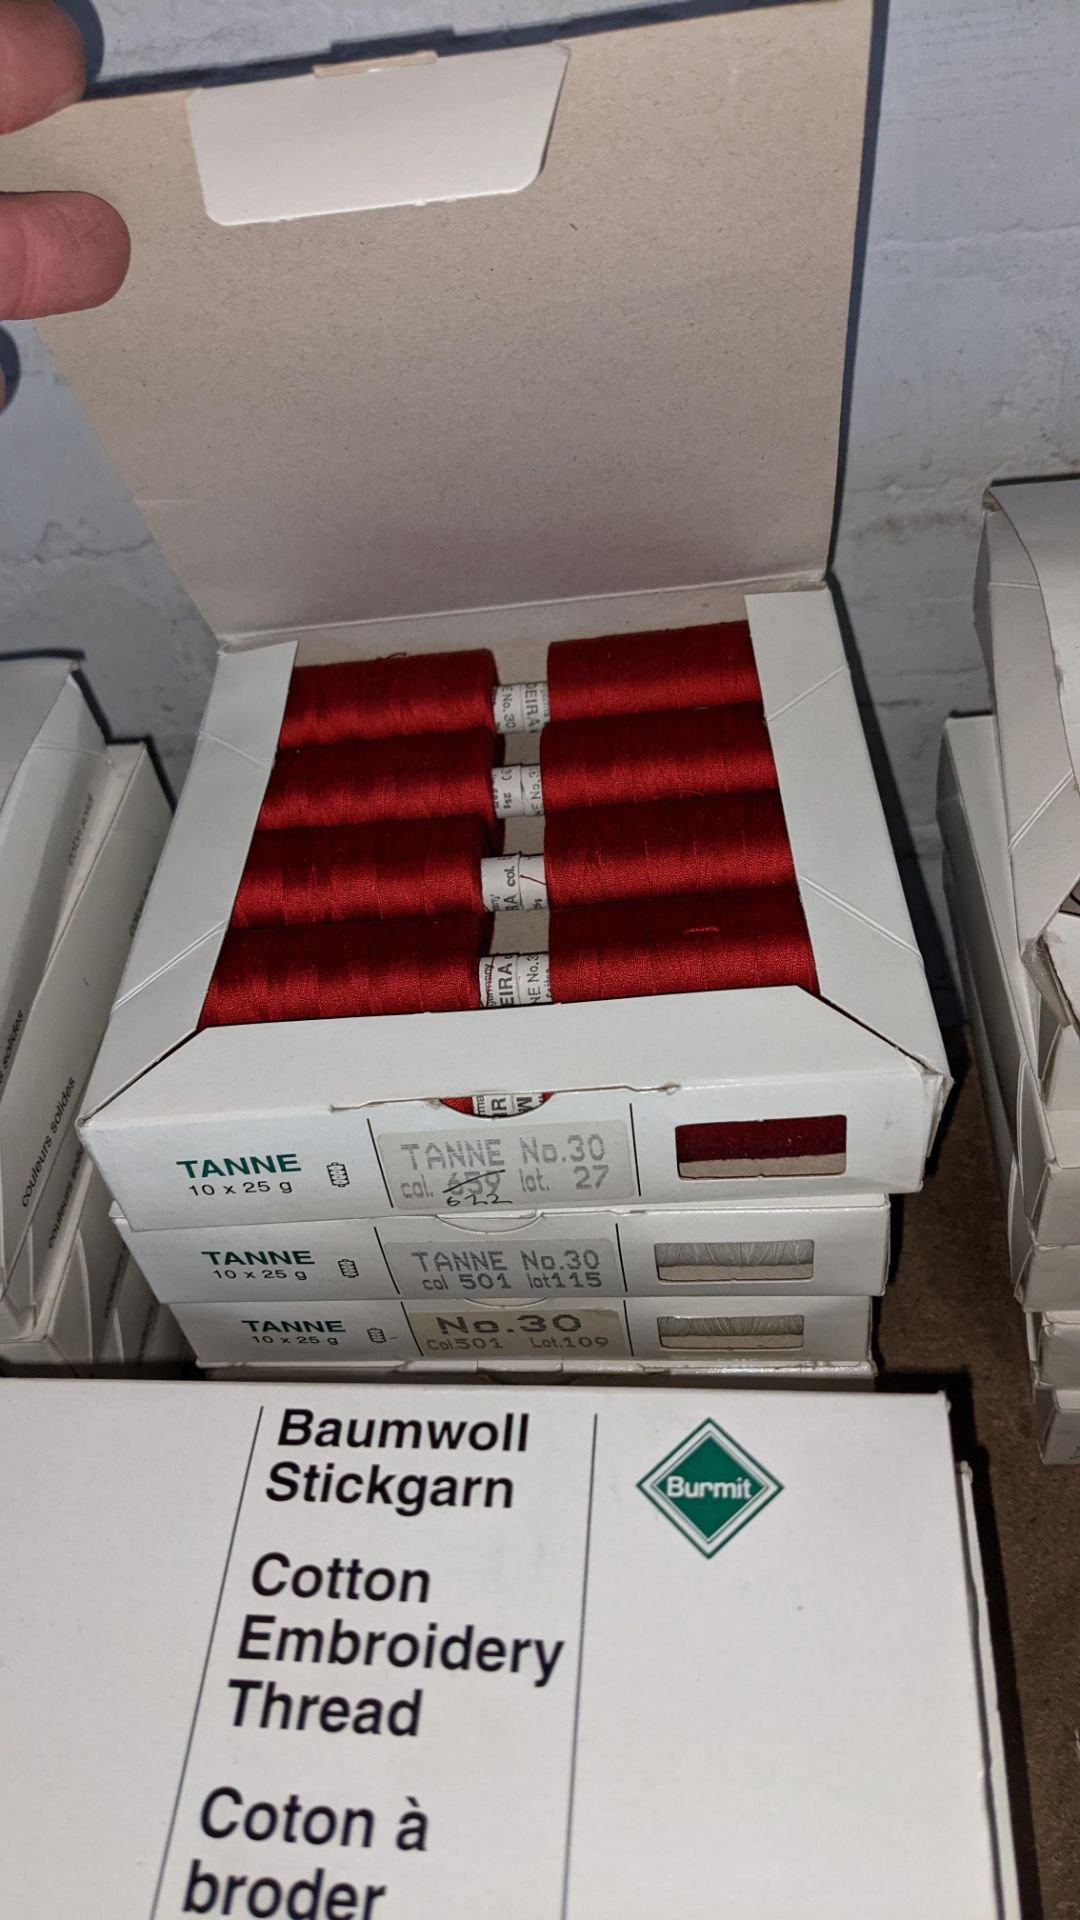 18 boxes of Madeira Tanne (Burmit) cotton embroidery thread - Image 8 of 8